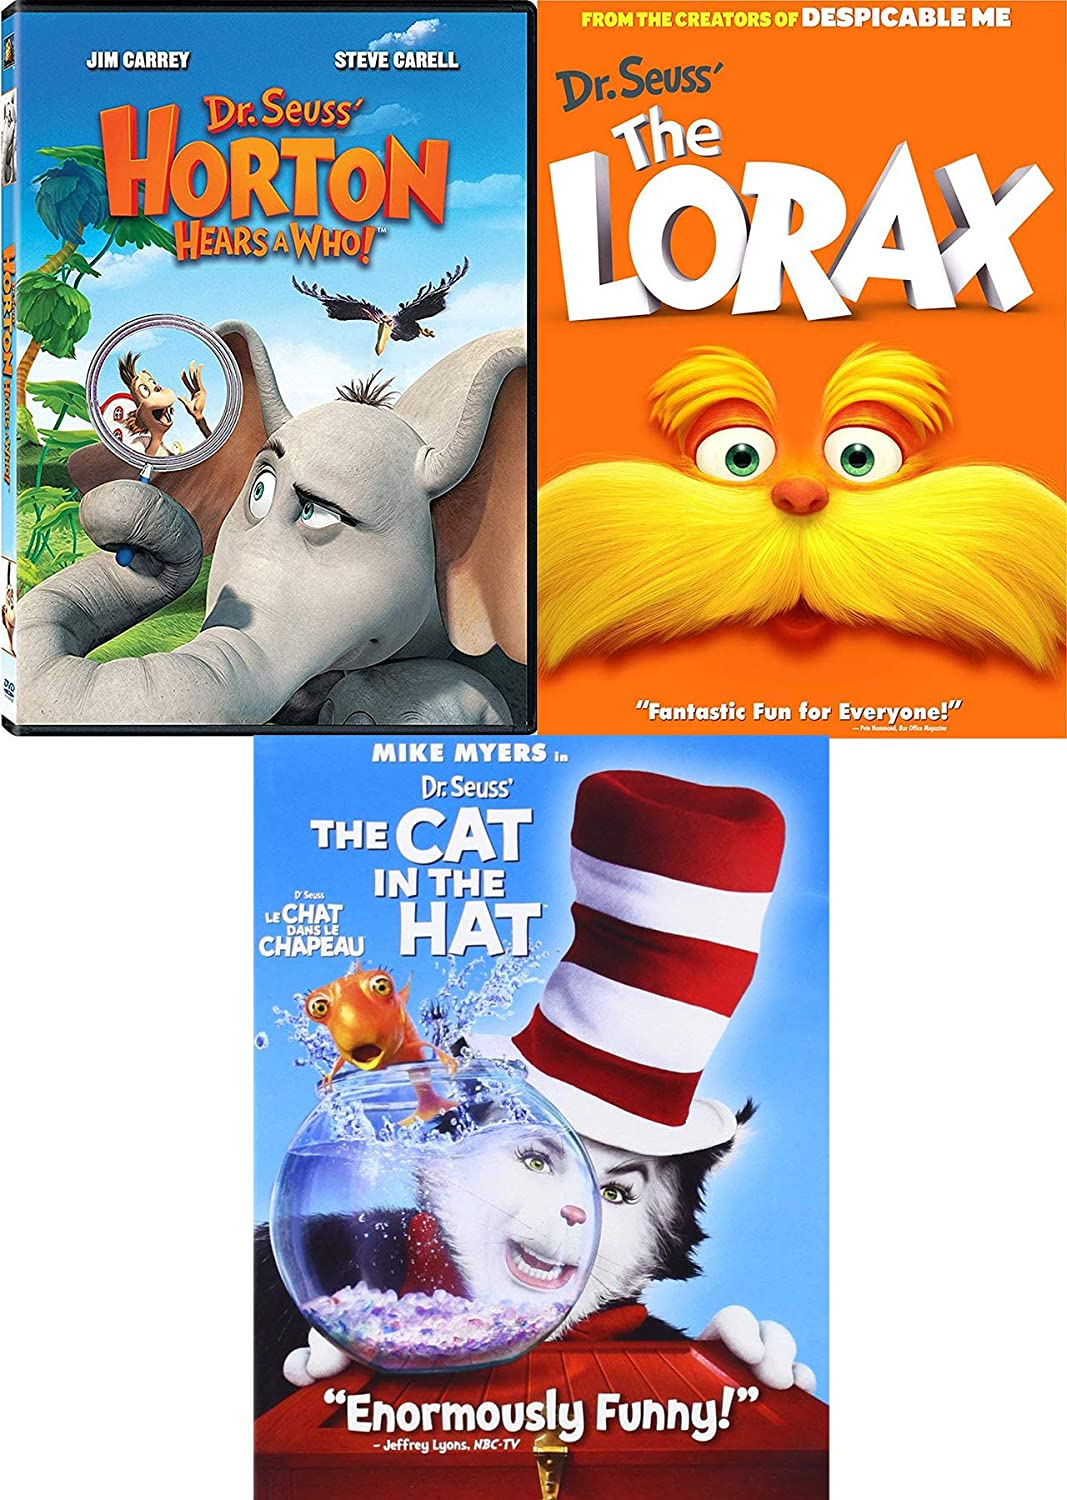 670b96c1 Amazon.com: Who's Dr. Seuss Triple DVD Horton Hears A Who! + The Lorax  Animated + Cat in the Hat Live Action 3 Feature DVD Set The imaginative  world comes ...